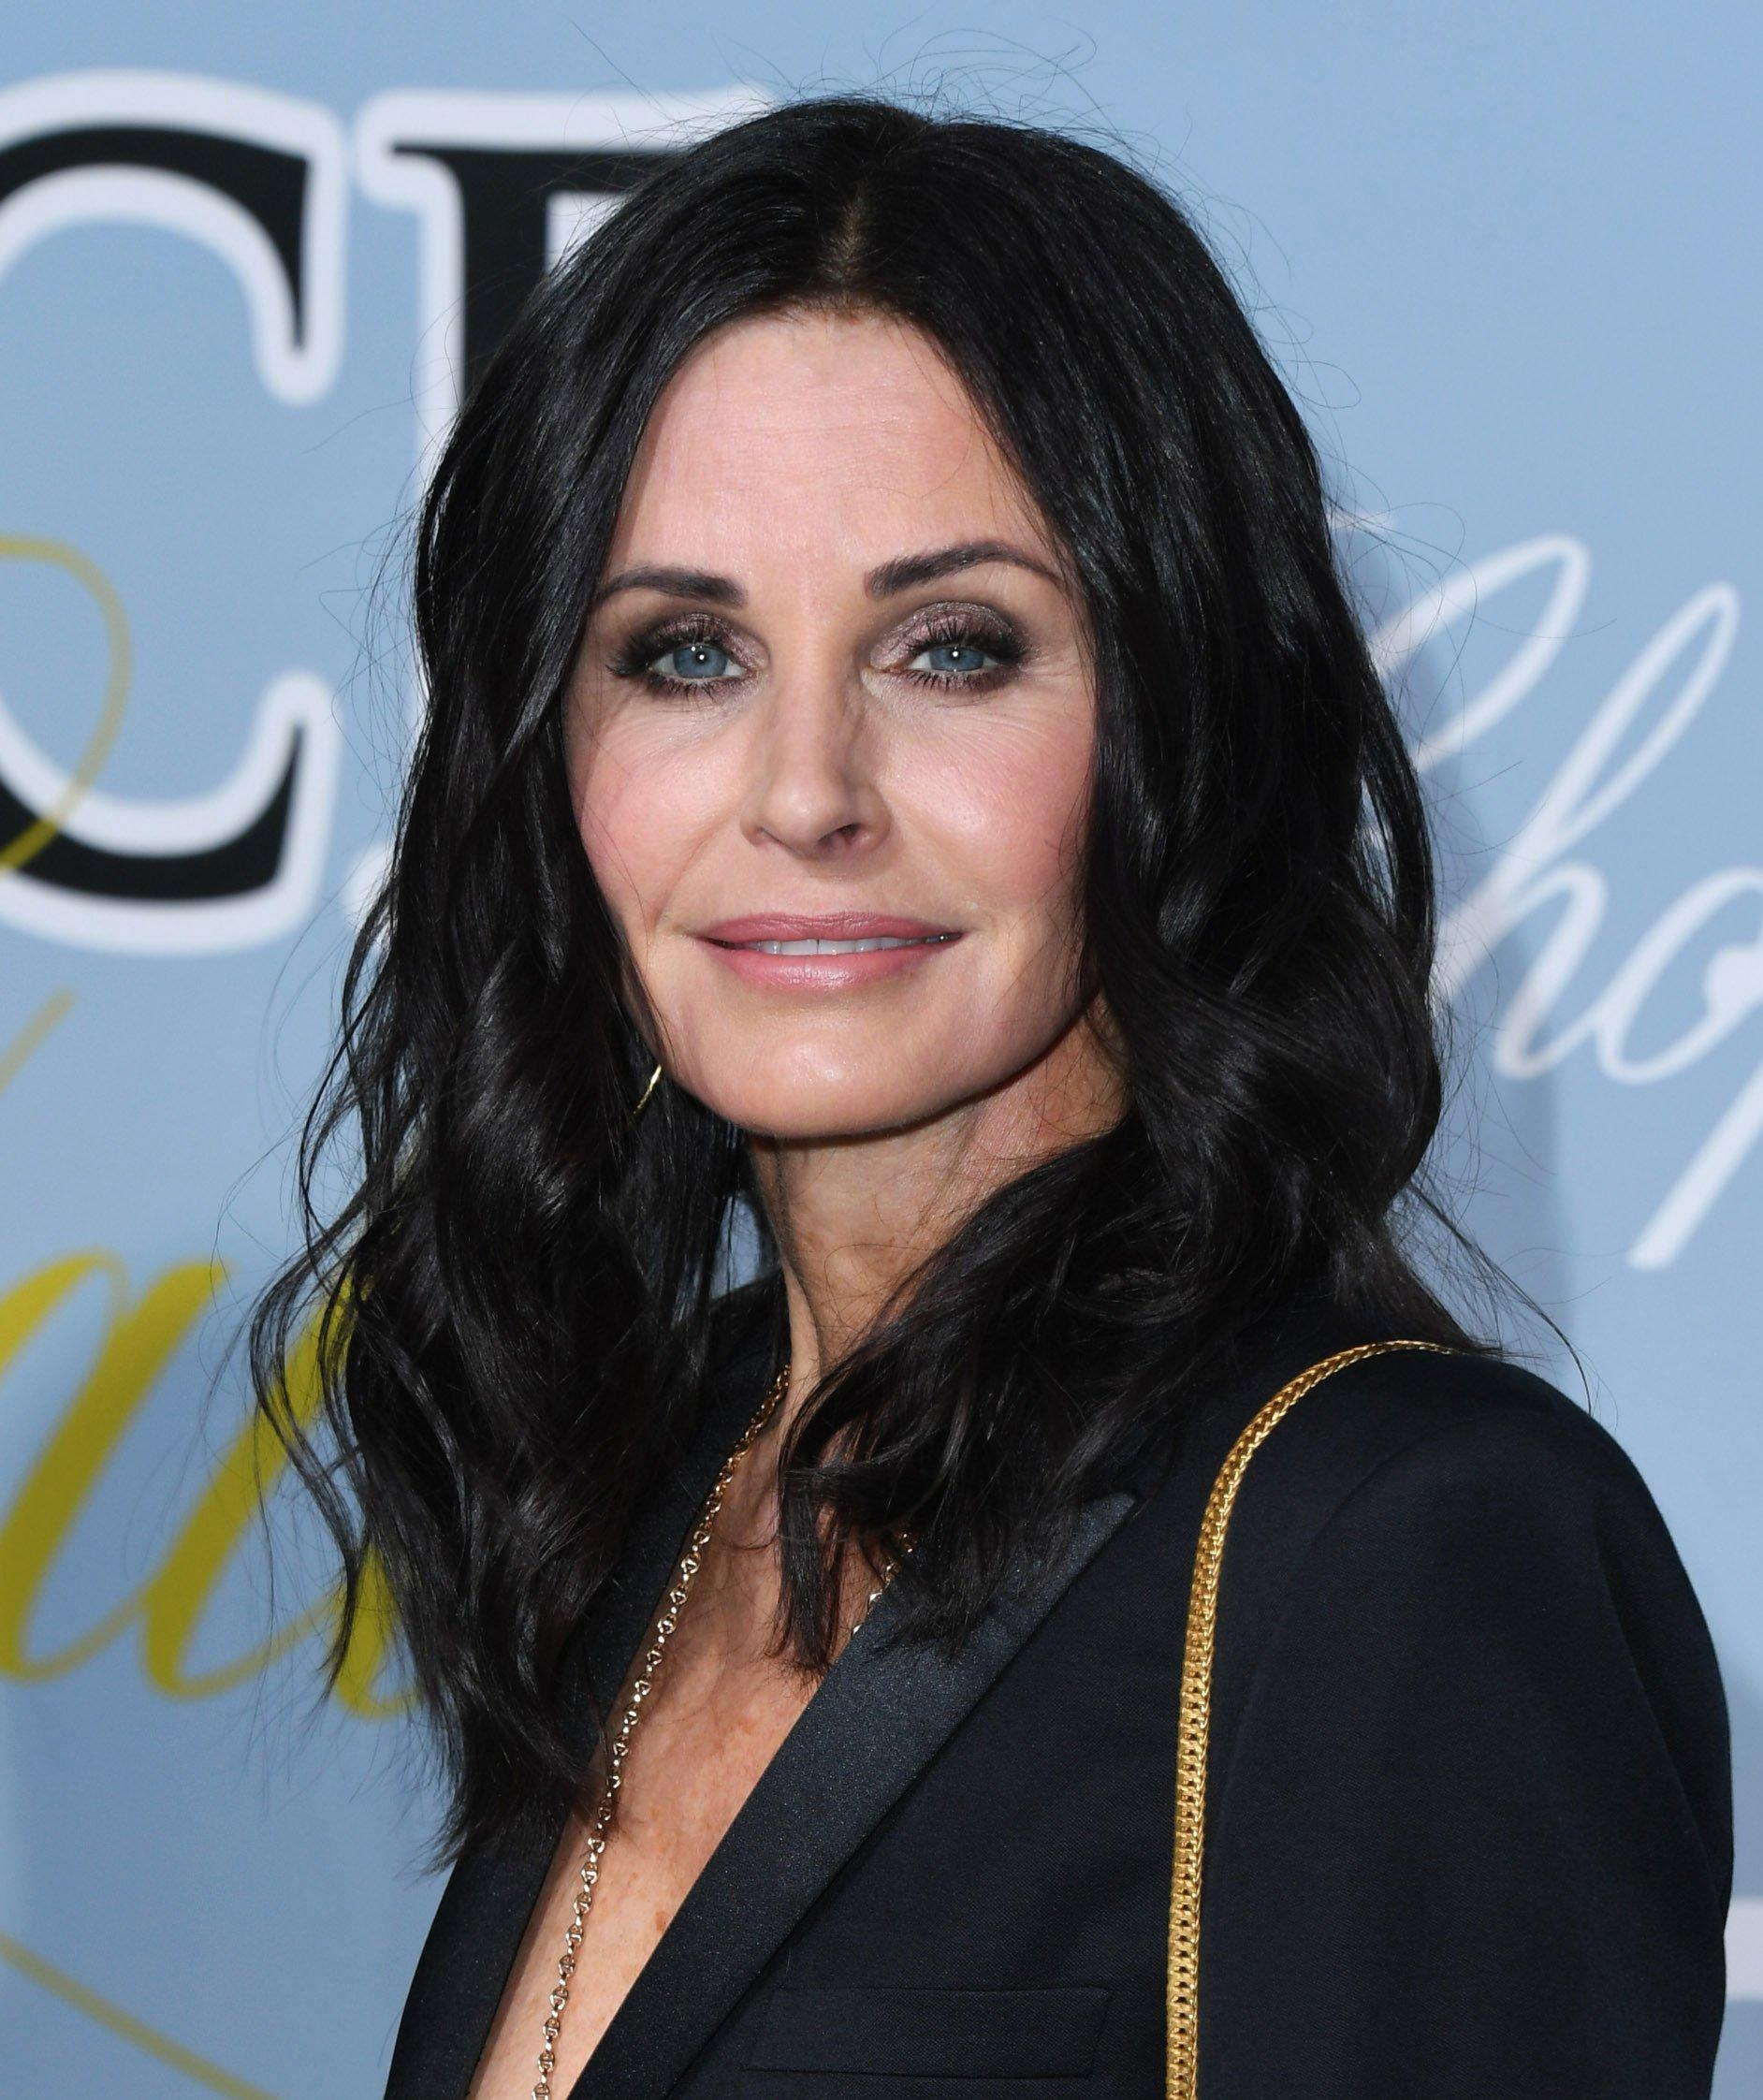 courteney cox just got in on the new shag hair trend